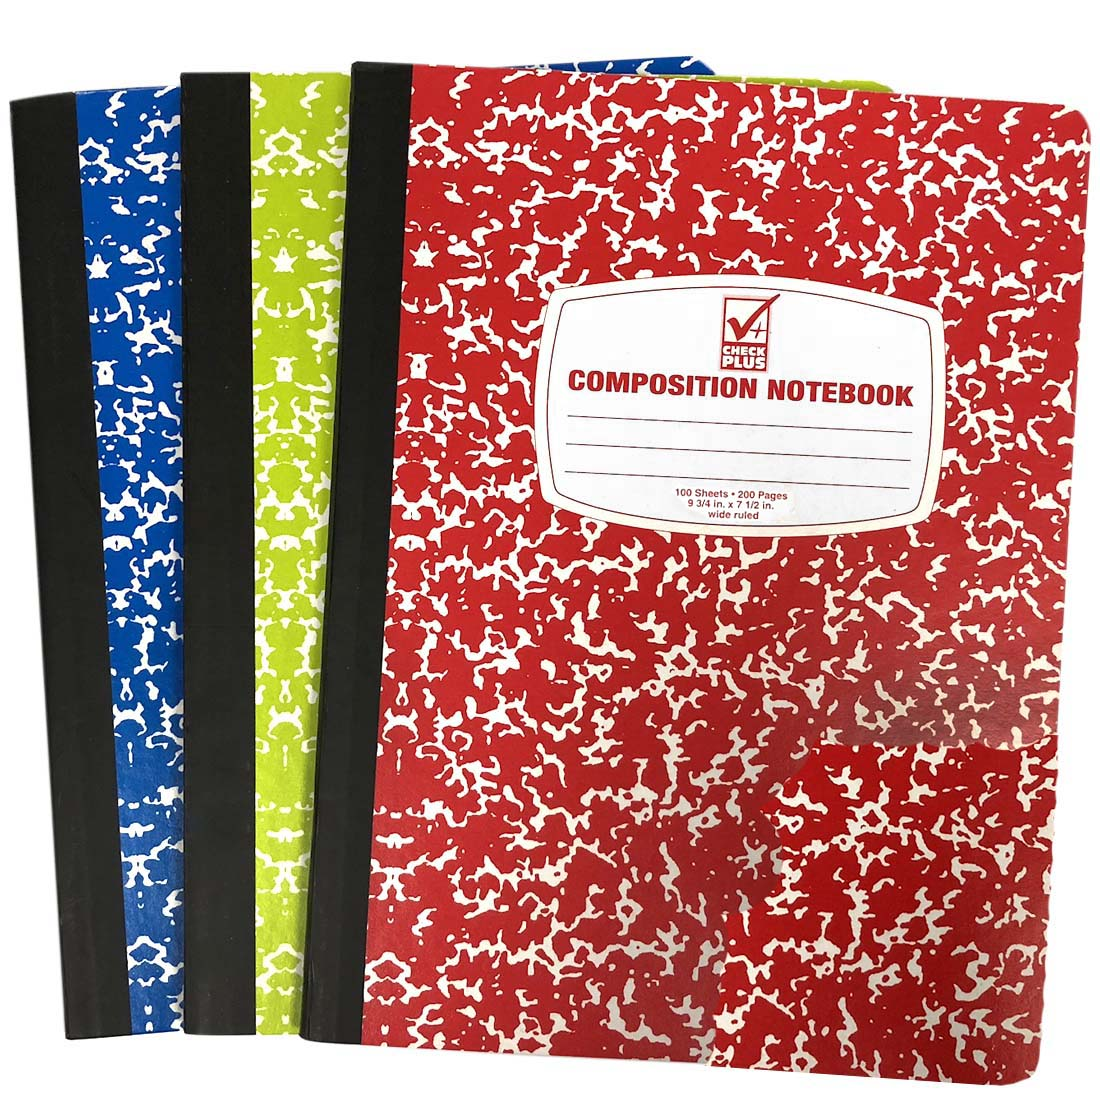 View COMPOSITION NOTEBOOK 100 SHEET 9.75 X 7.5 INCH WIDE RULE